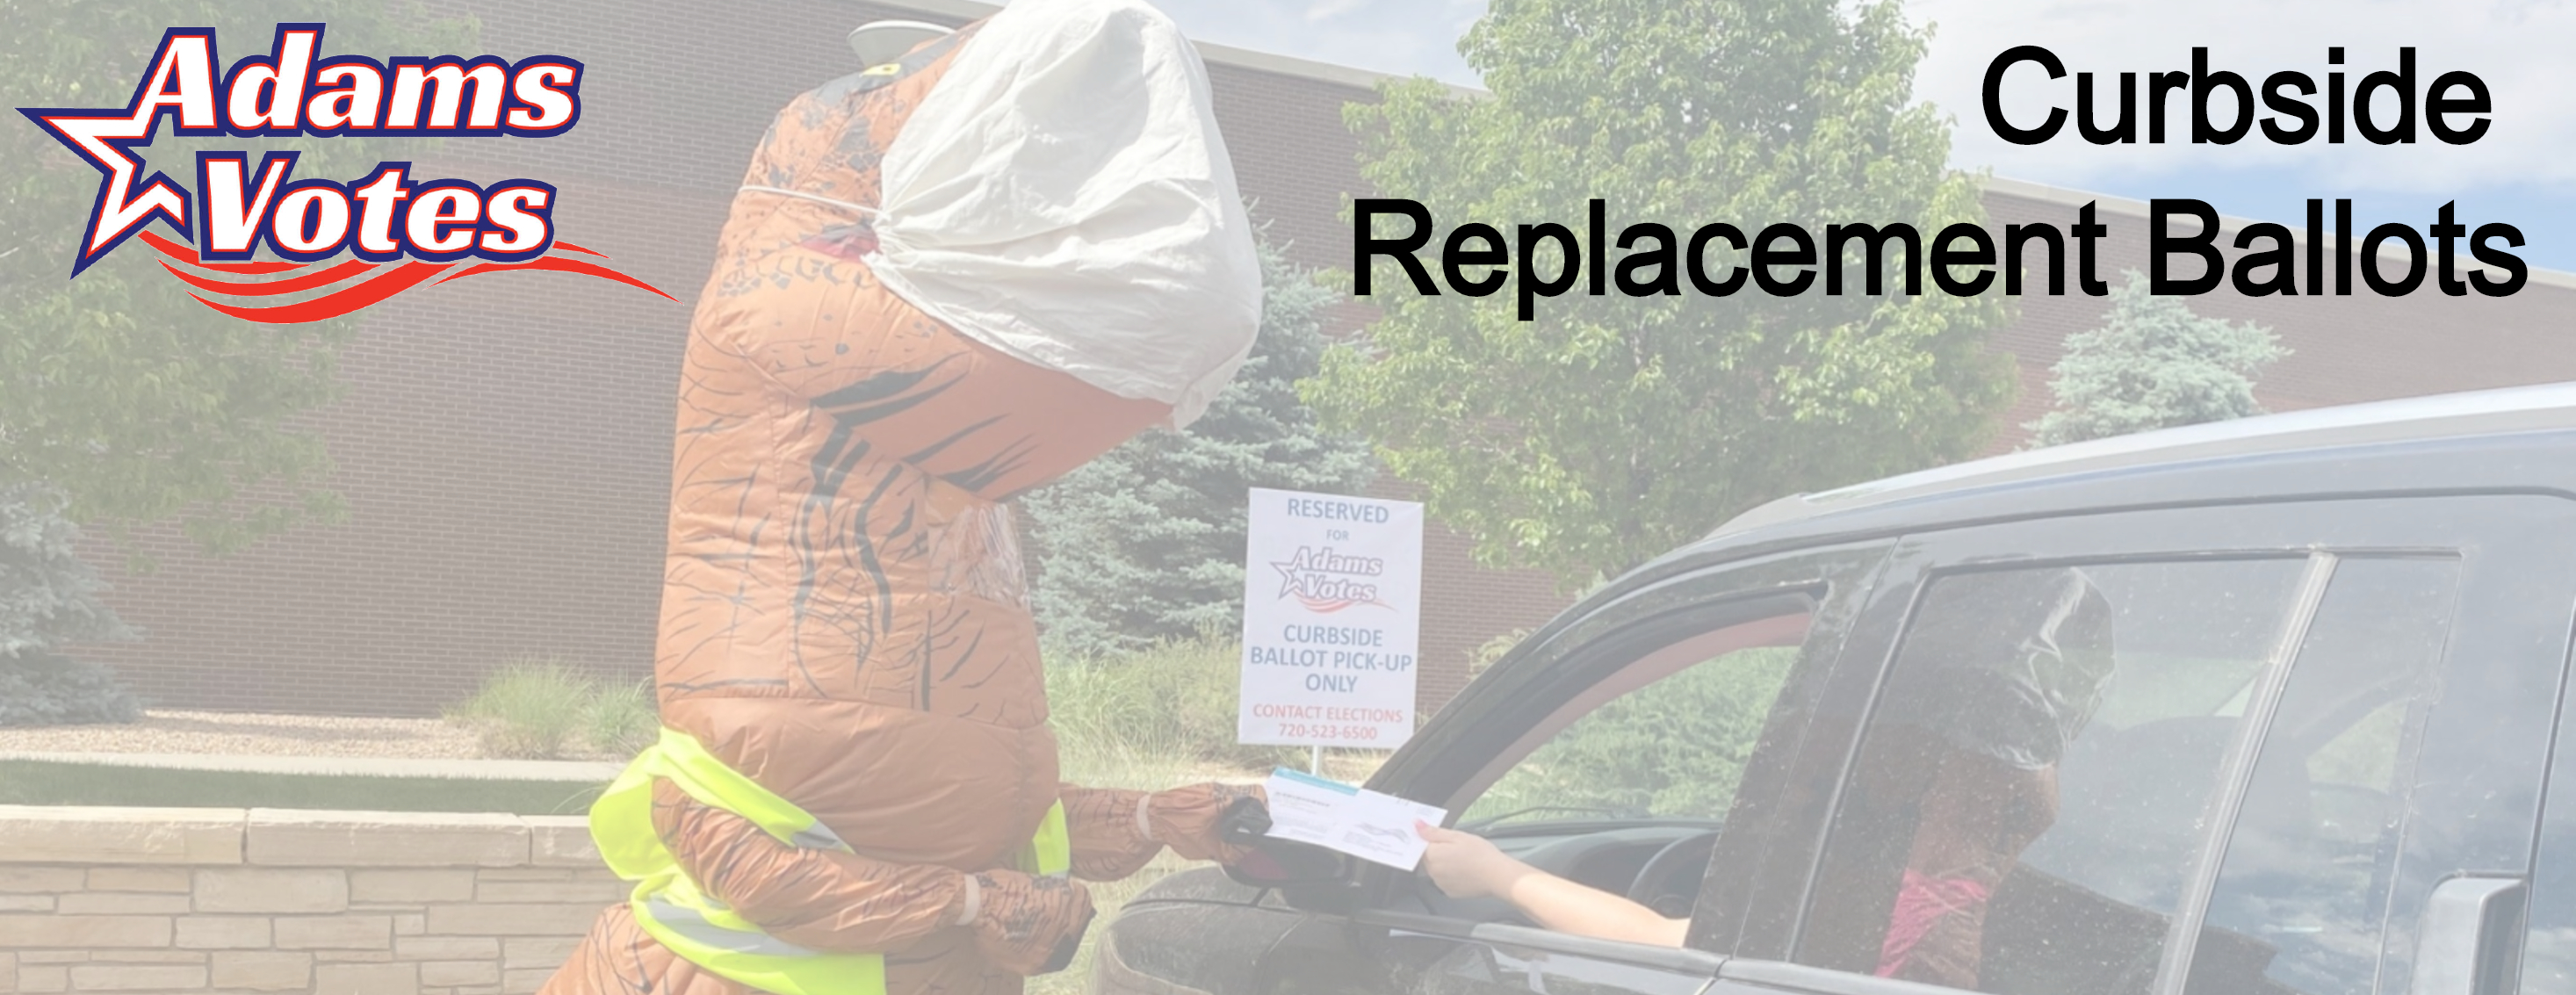 Curbside Replacement Ballots